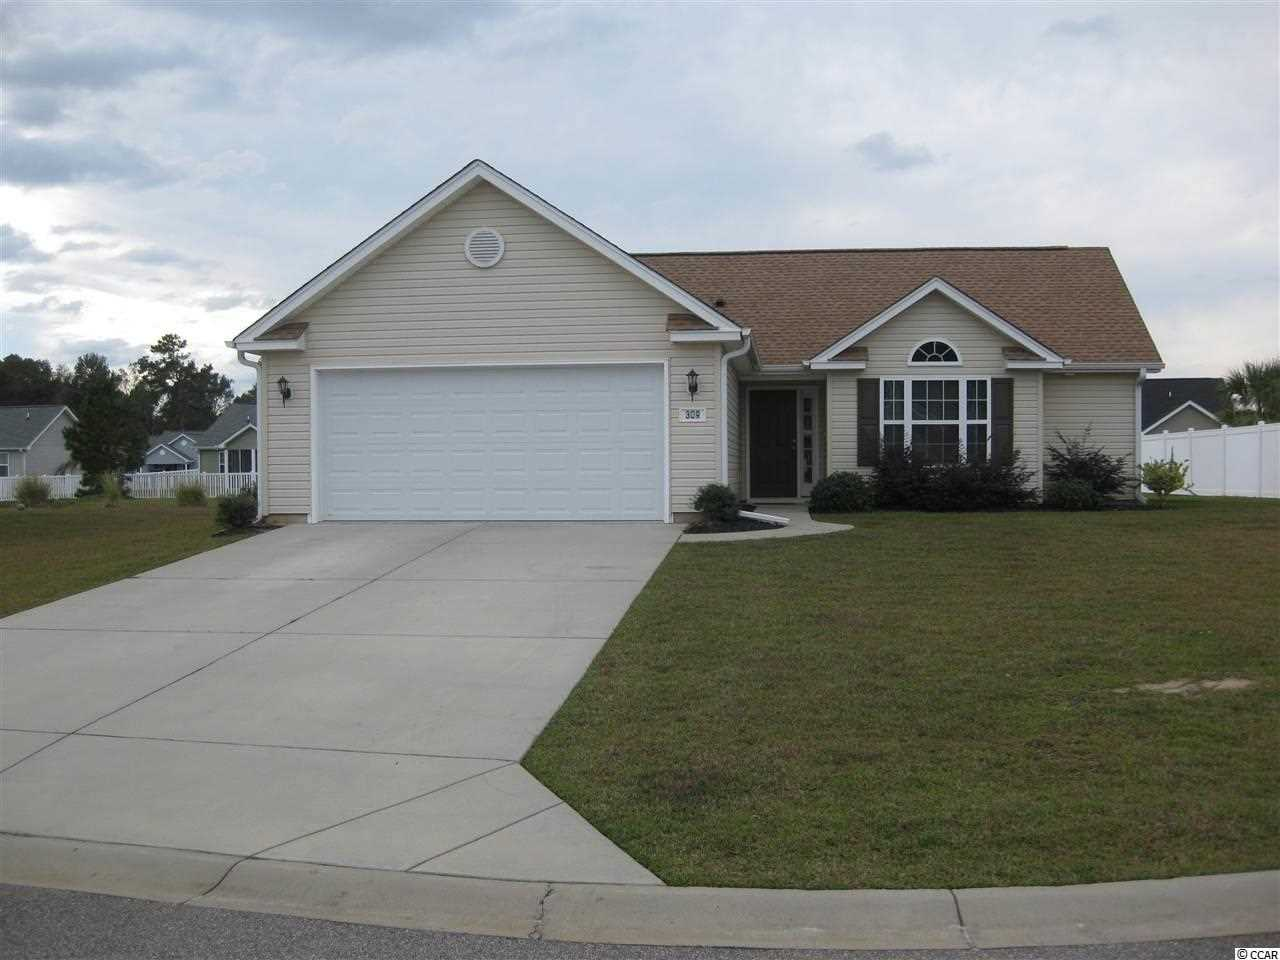 309 Bryant Park Ct. Conway, SC 29527 | MLS 1724171 Photo 1